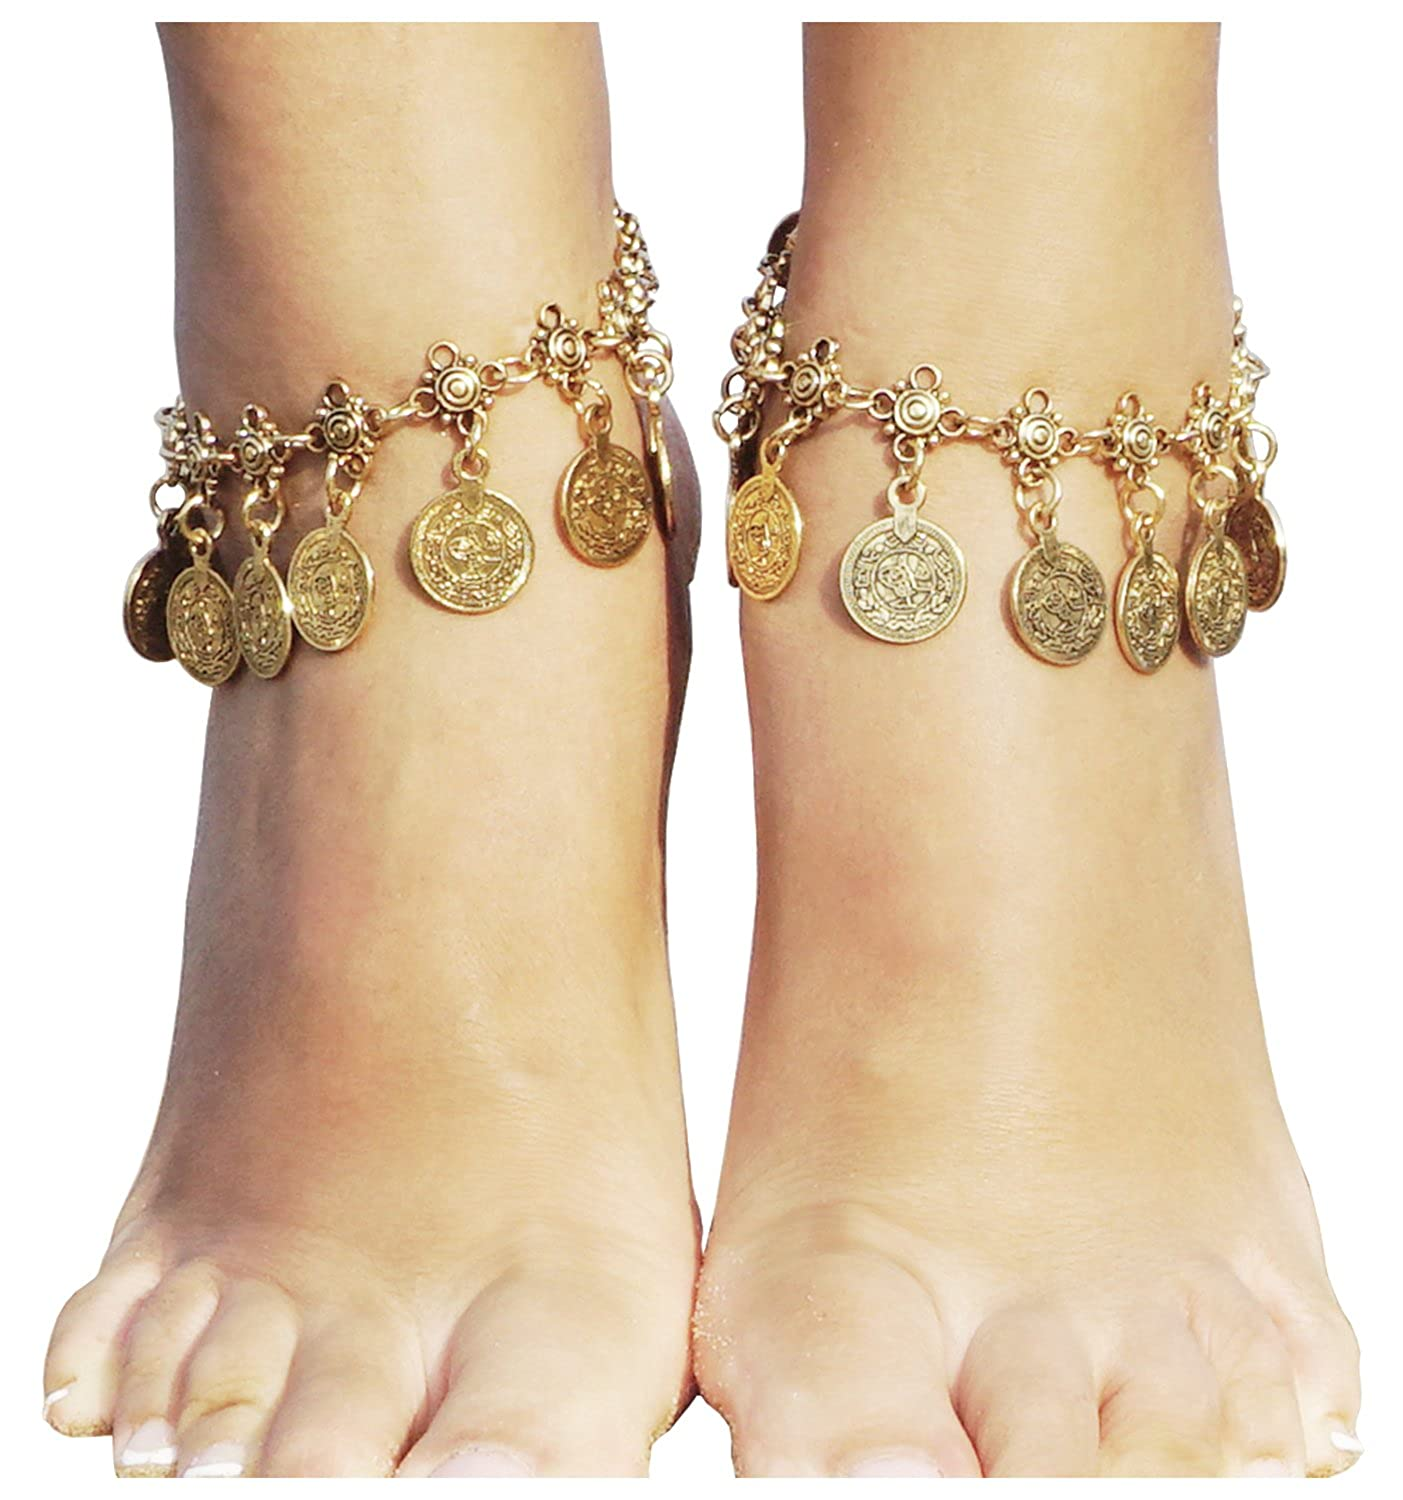 at bracelet jewelry products gold fine link anklet yellow heart anklets cfm detail palmbeach ankle